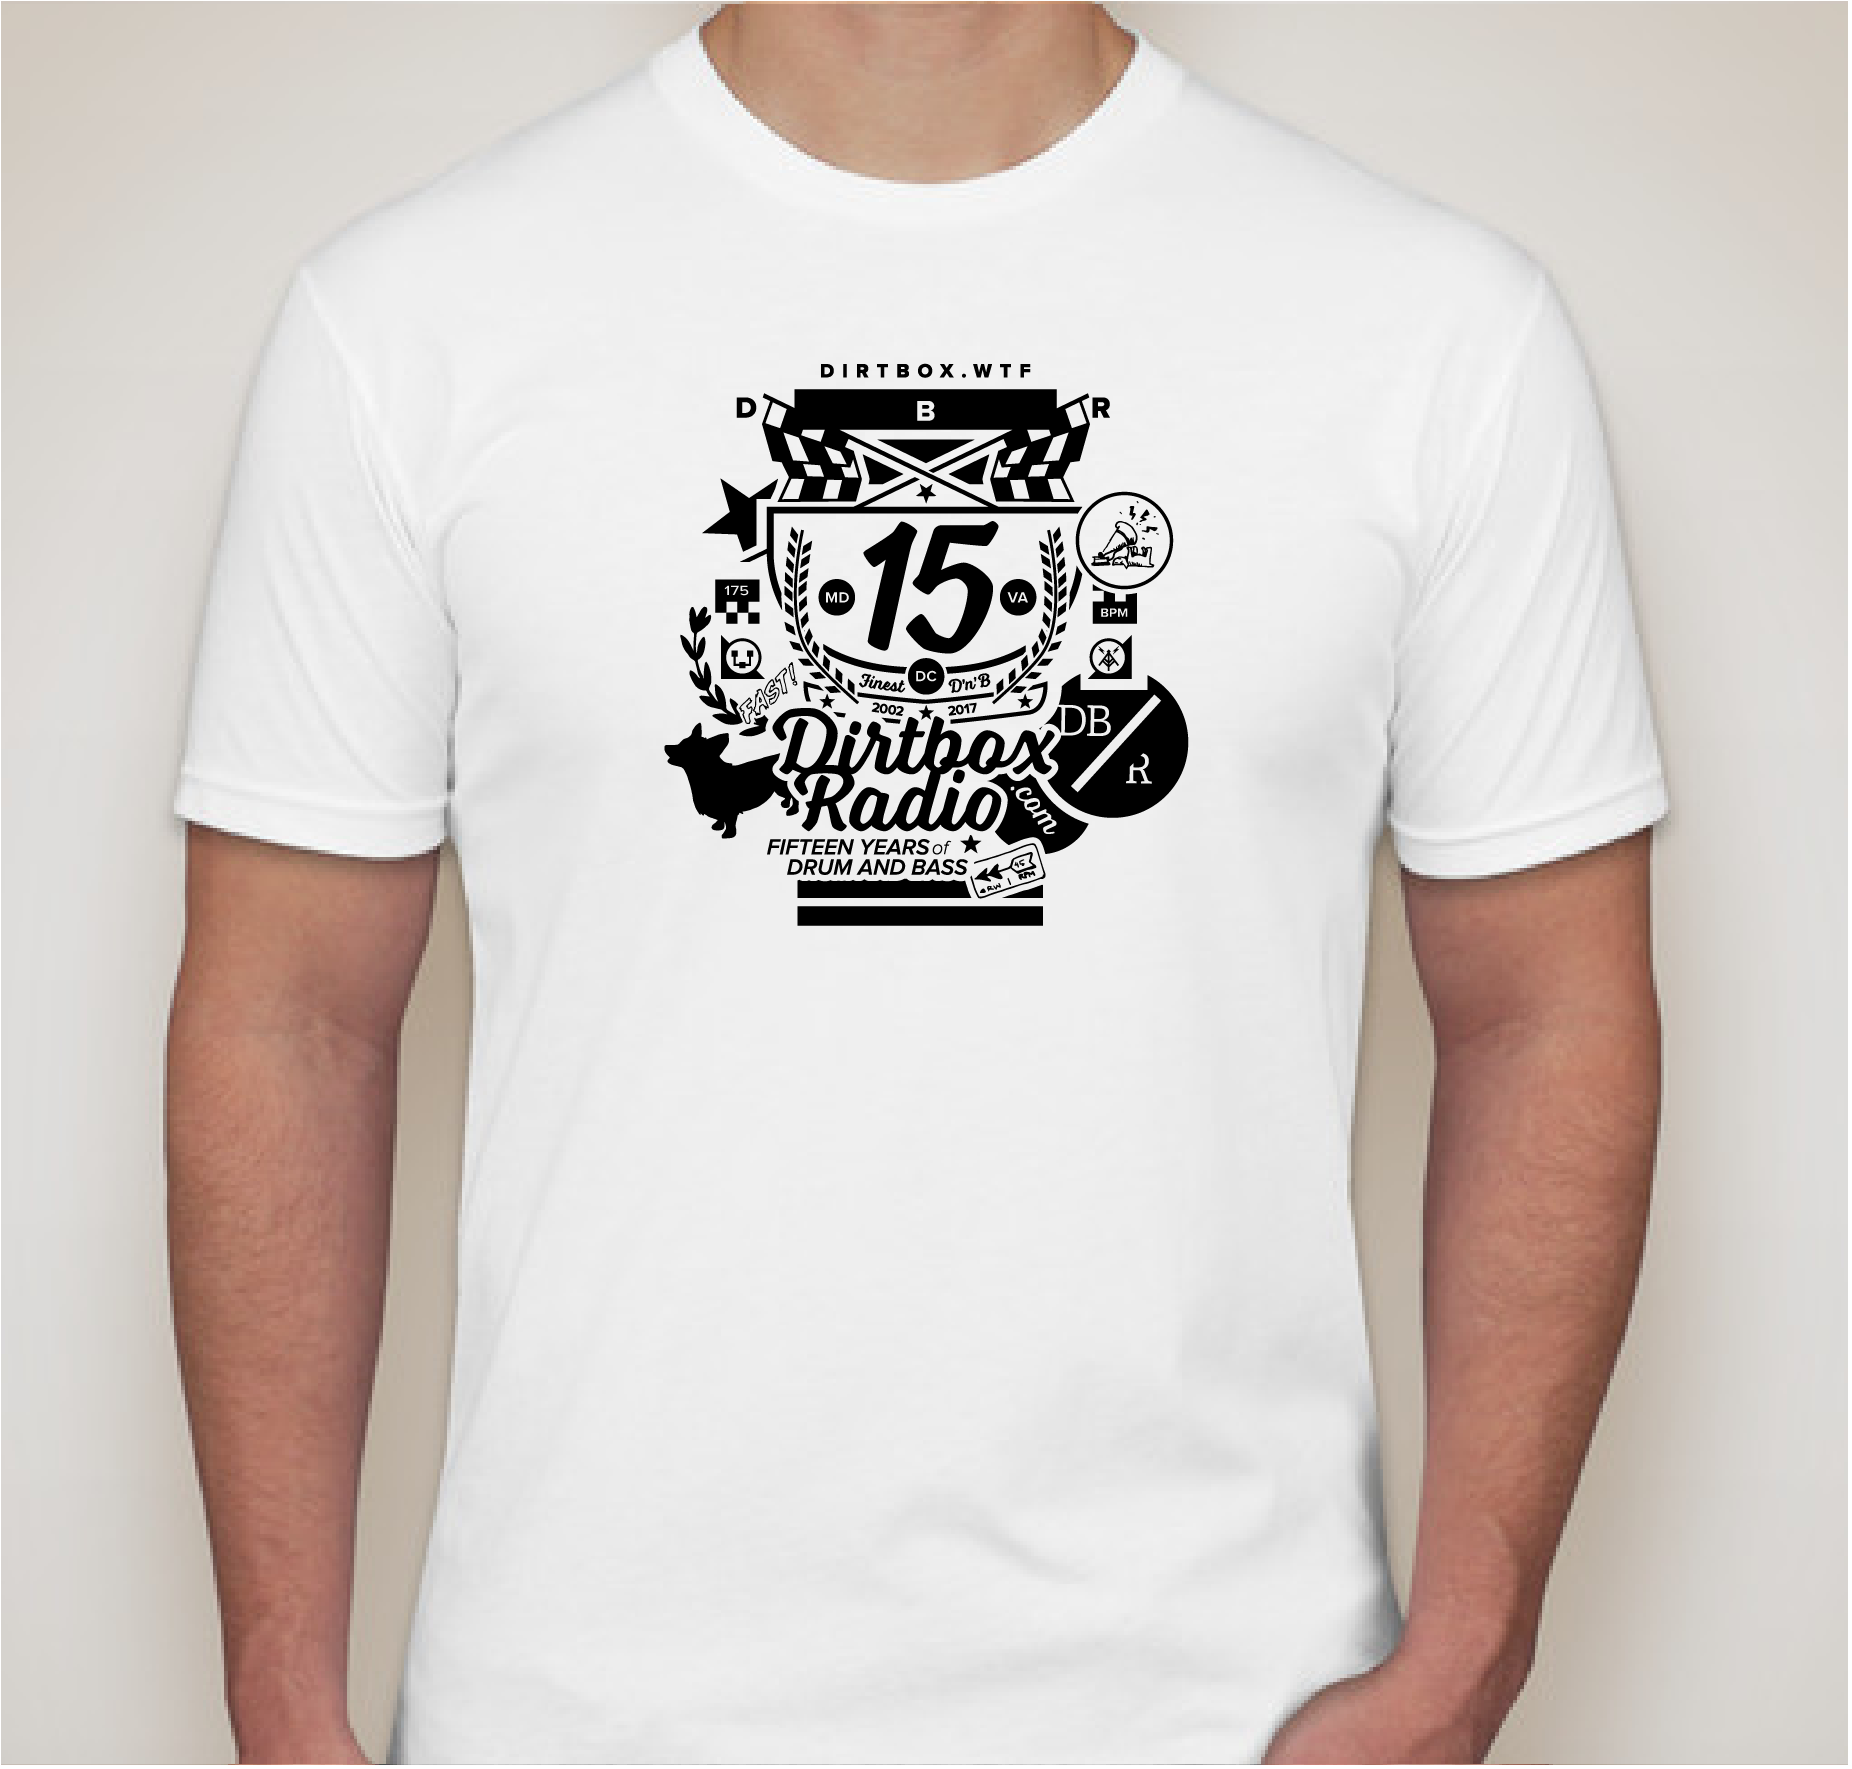 2017_dbr_15_year_shirt__FINAL-DARKONLIGHT-white.png